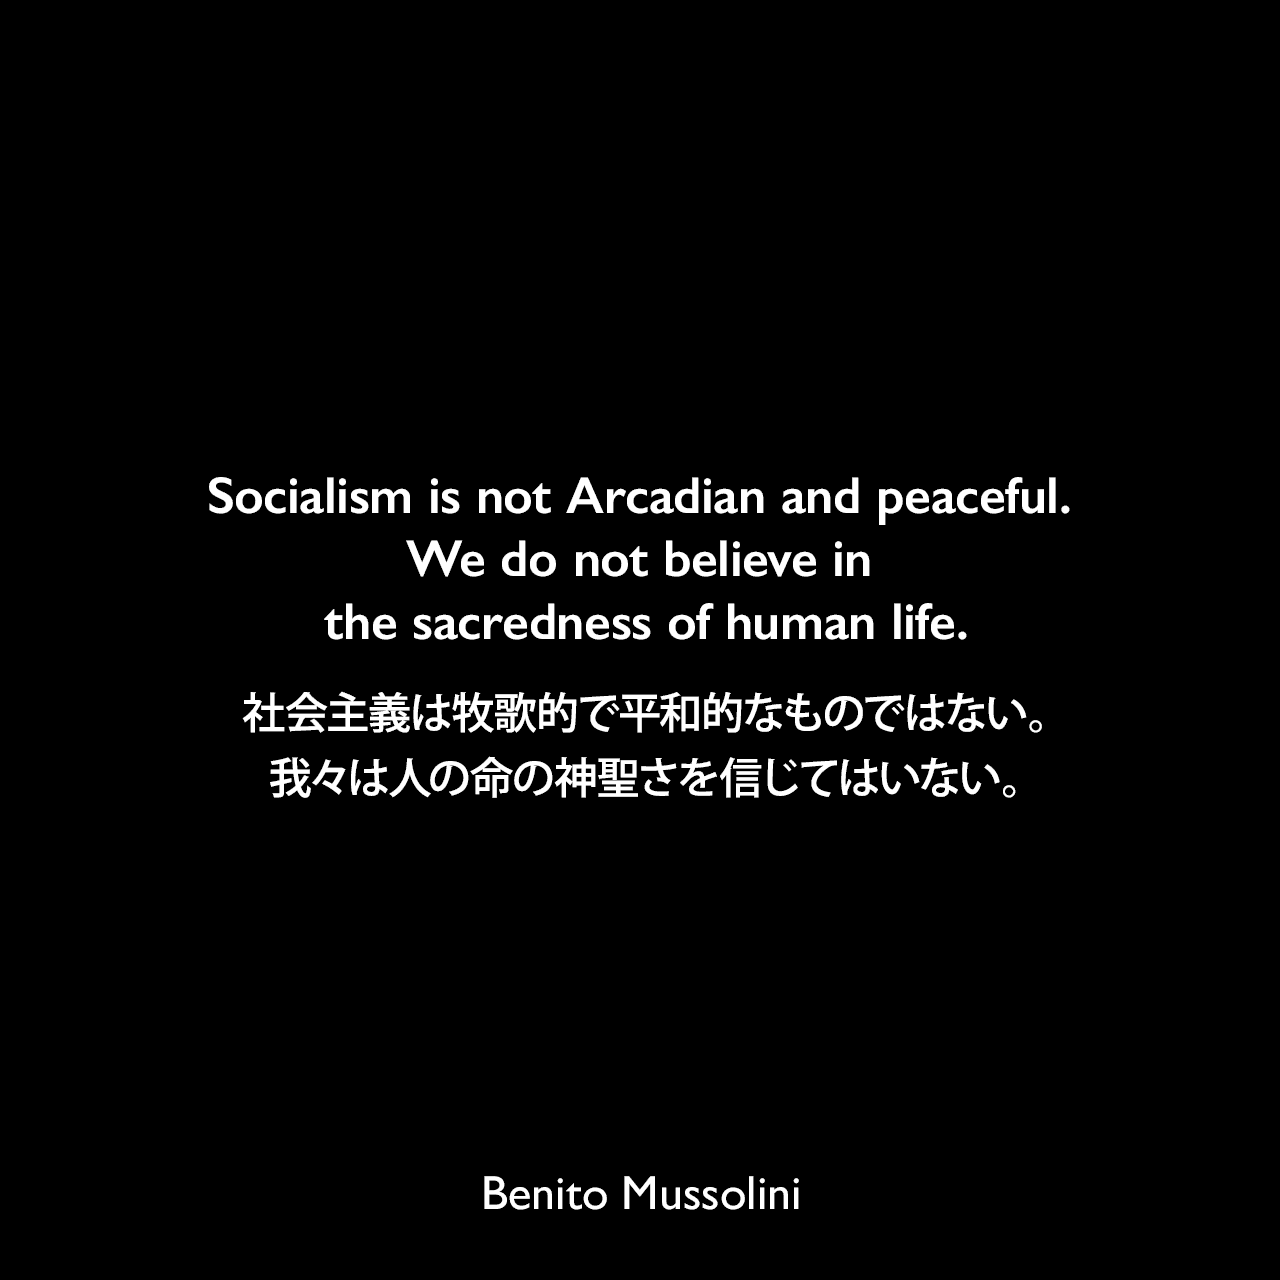 Socialism is not Arcadian and peaceful. We do not believe in the sacredness of human life.社会主義は牧歌的で平和的なものではない。我々は人の命の神聖さを信じてはいない。- 1932年3月23日から4月4日、ローマのヴェネツィア宮殿でのインタビューよりBenito Mussolini